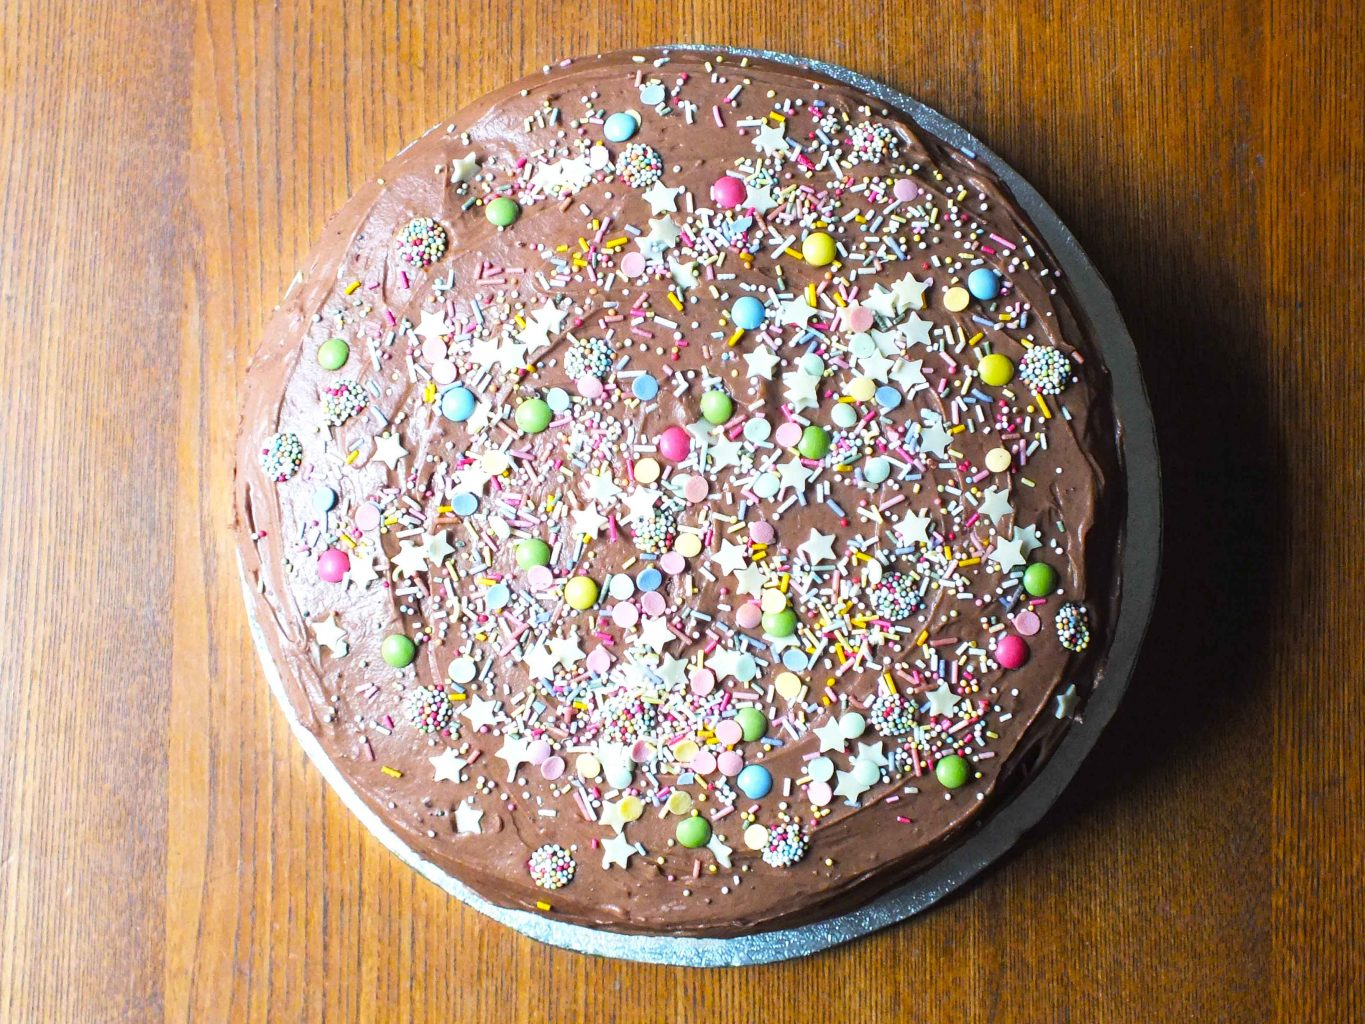 Looking down on chocolate cake covered in colourful sprinkles